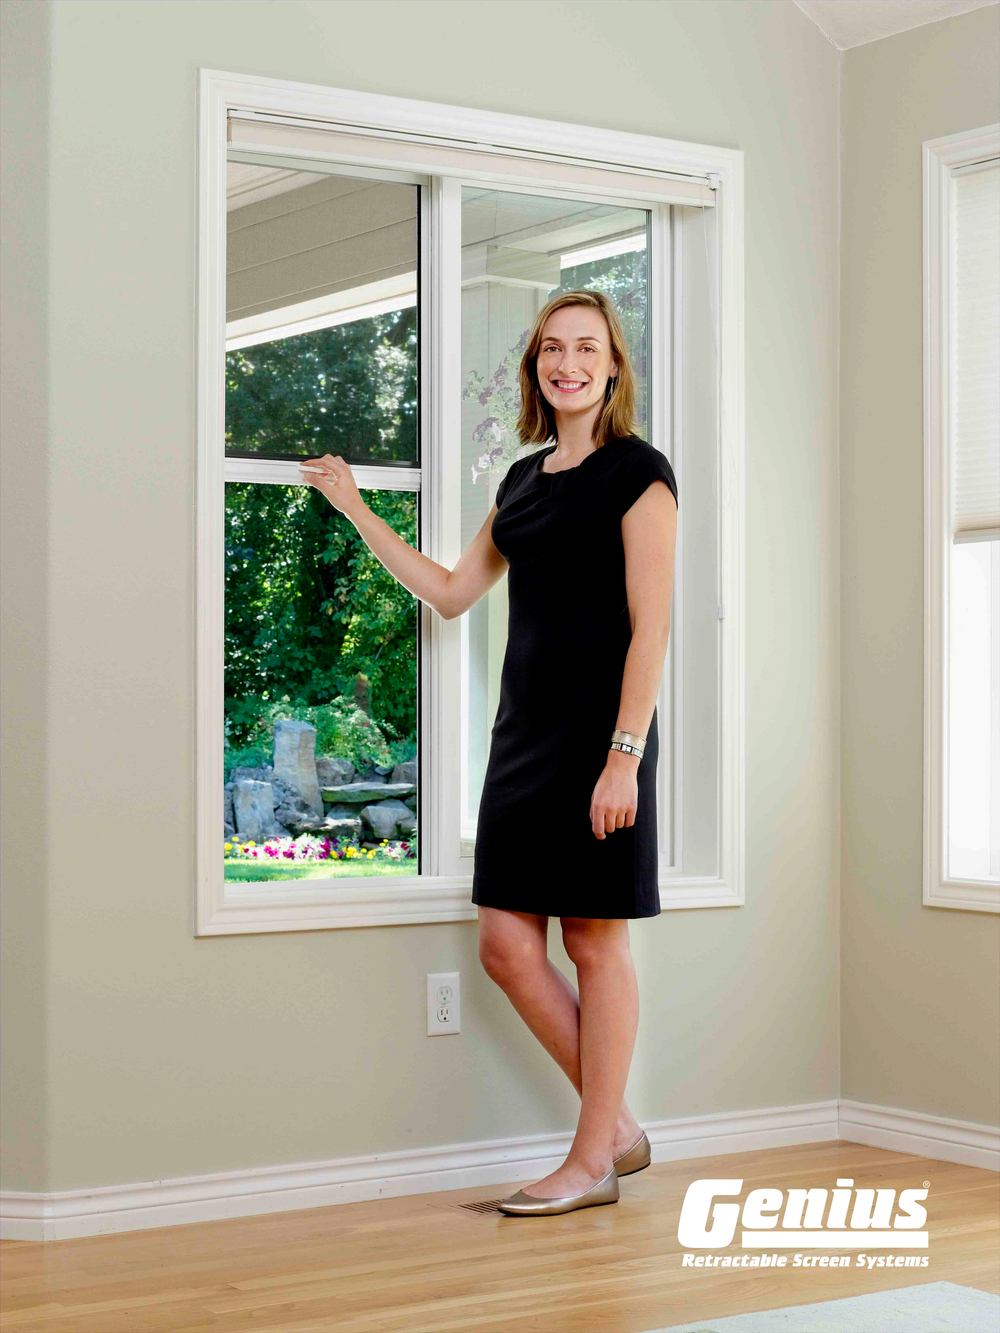 Right Path Windows & Restorations can supply all of your window and screen needs.